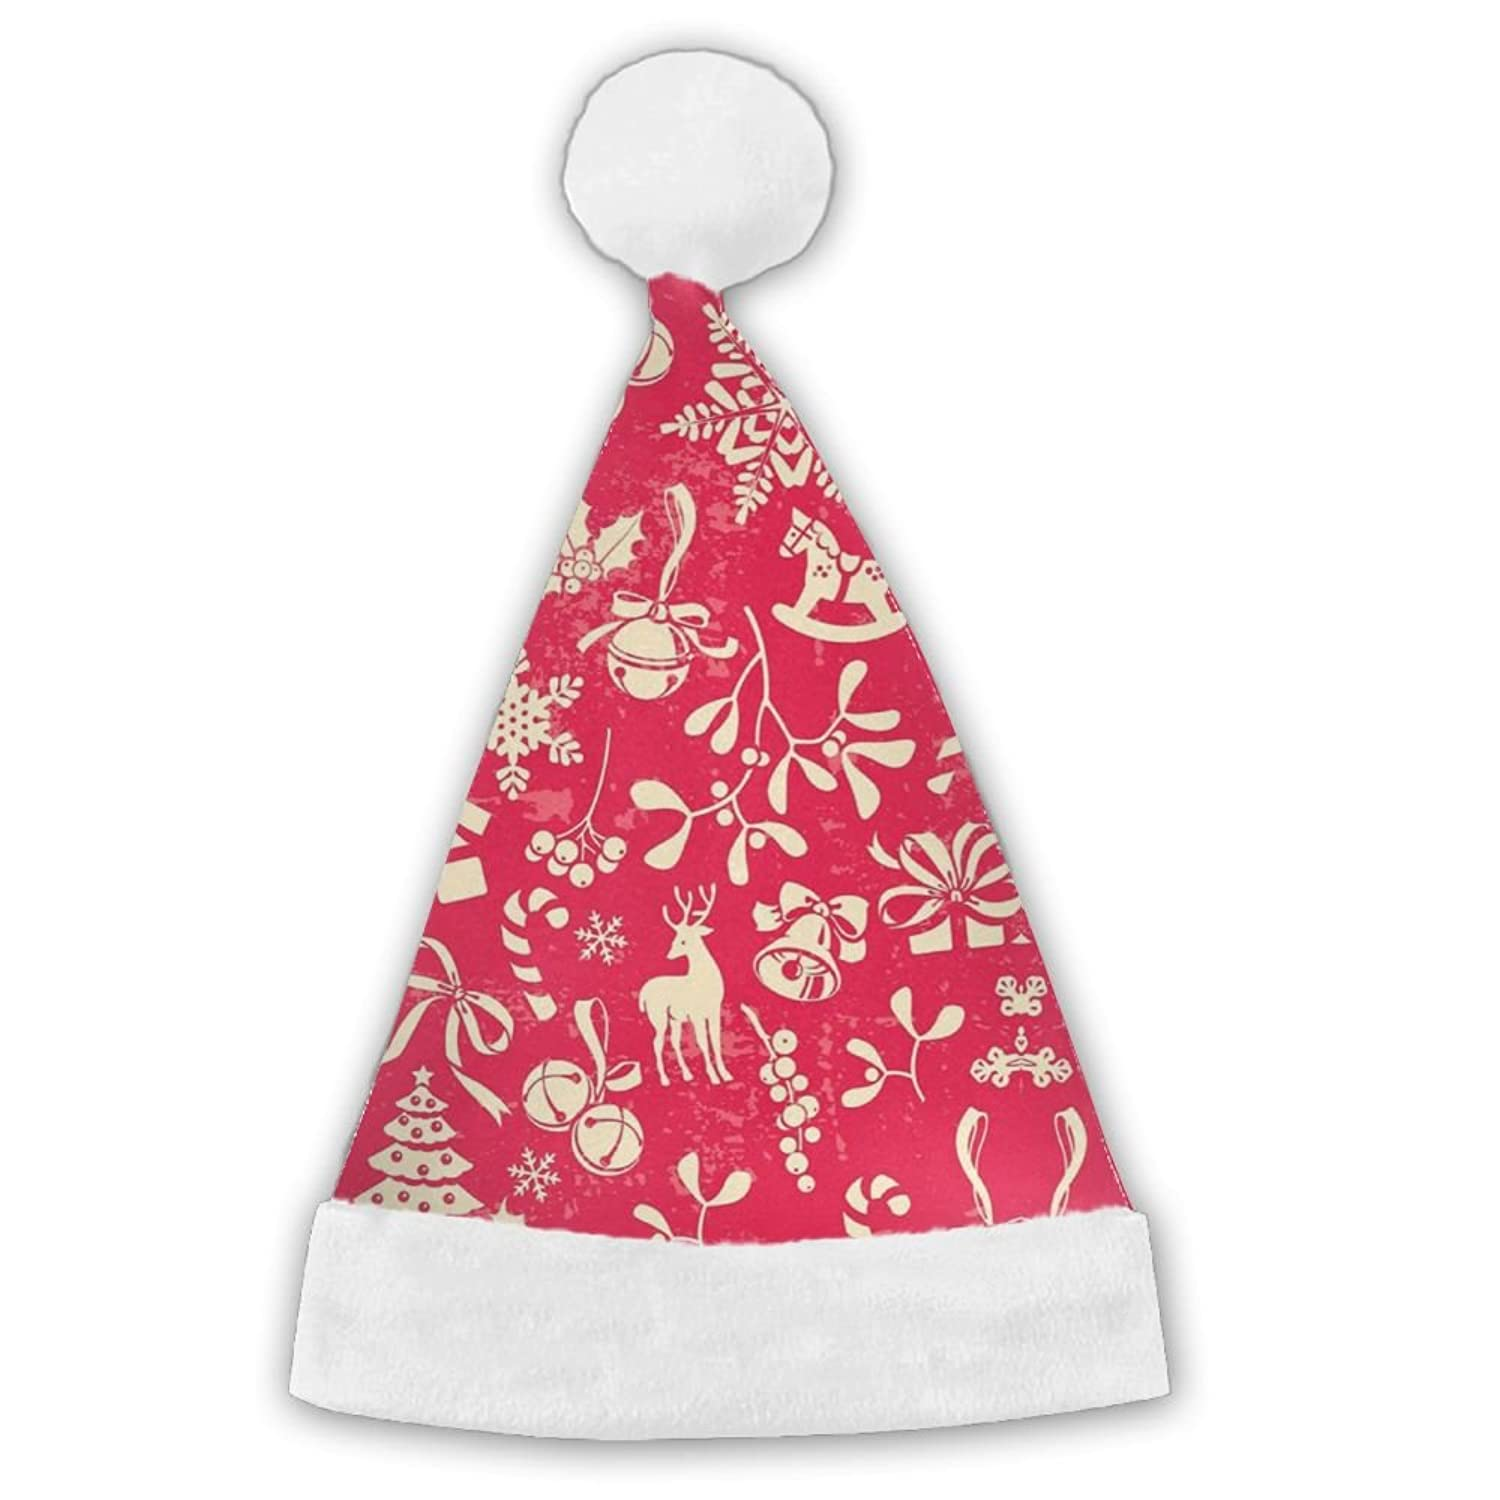 hot sell HOT Santa Hat Merry Christmas Holiday Theme Hats Personalized Stylish Xmas Christmas Elf Hat get discount